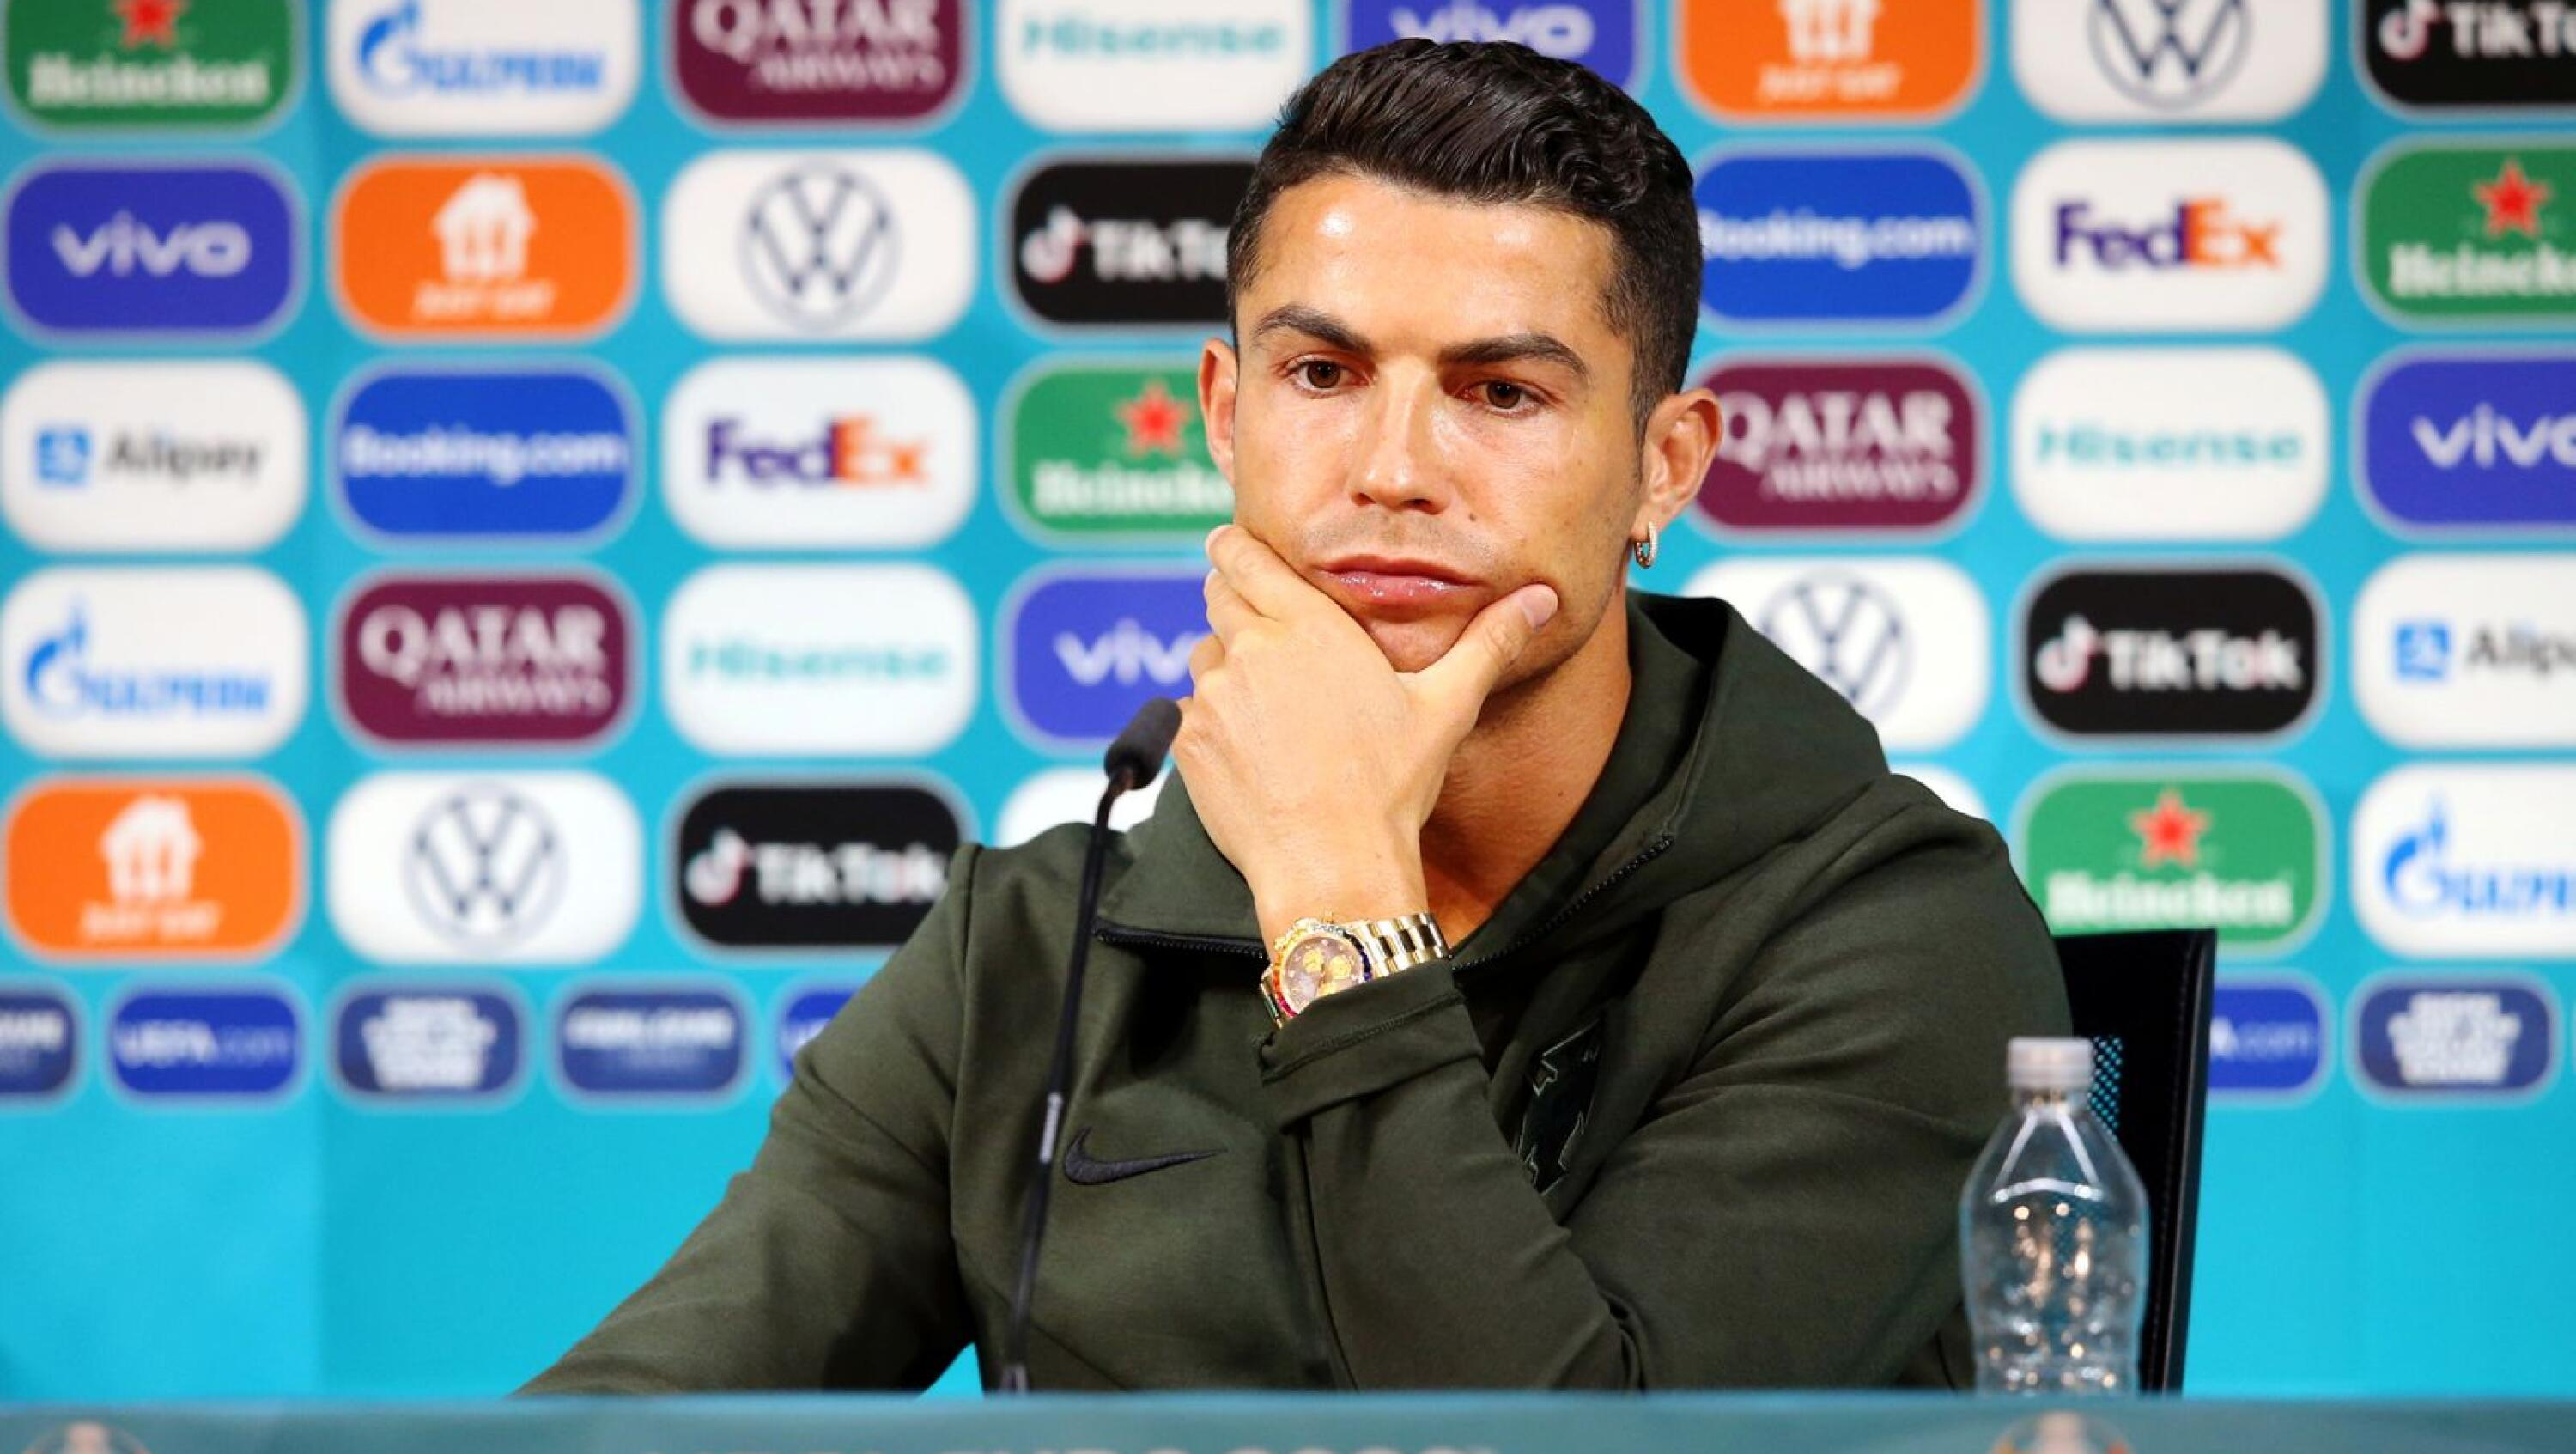 Portugal's Cristiano Ronaldo speaks during a press conference ahead of their match against Hungary